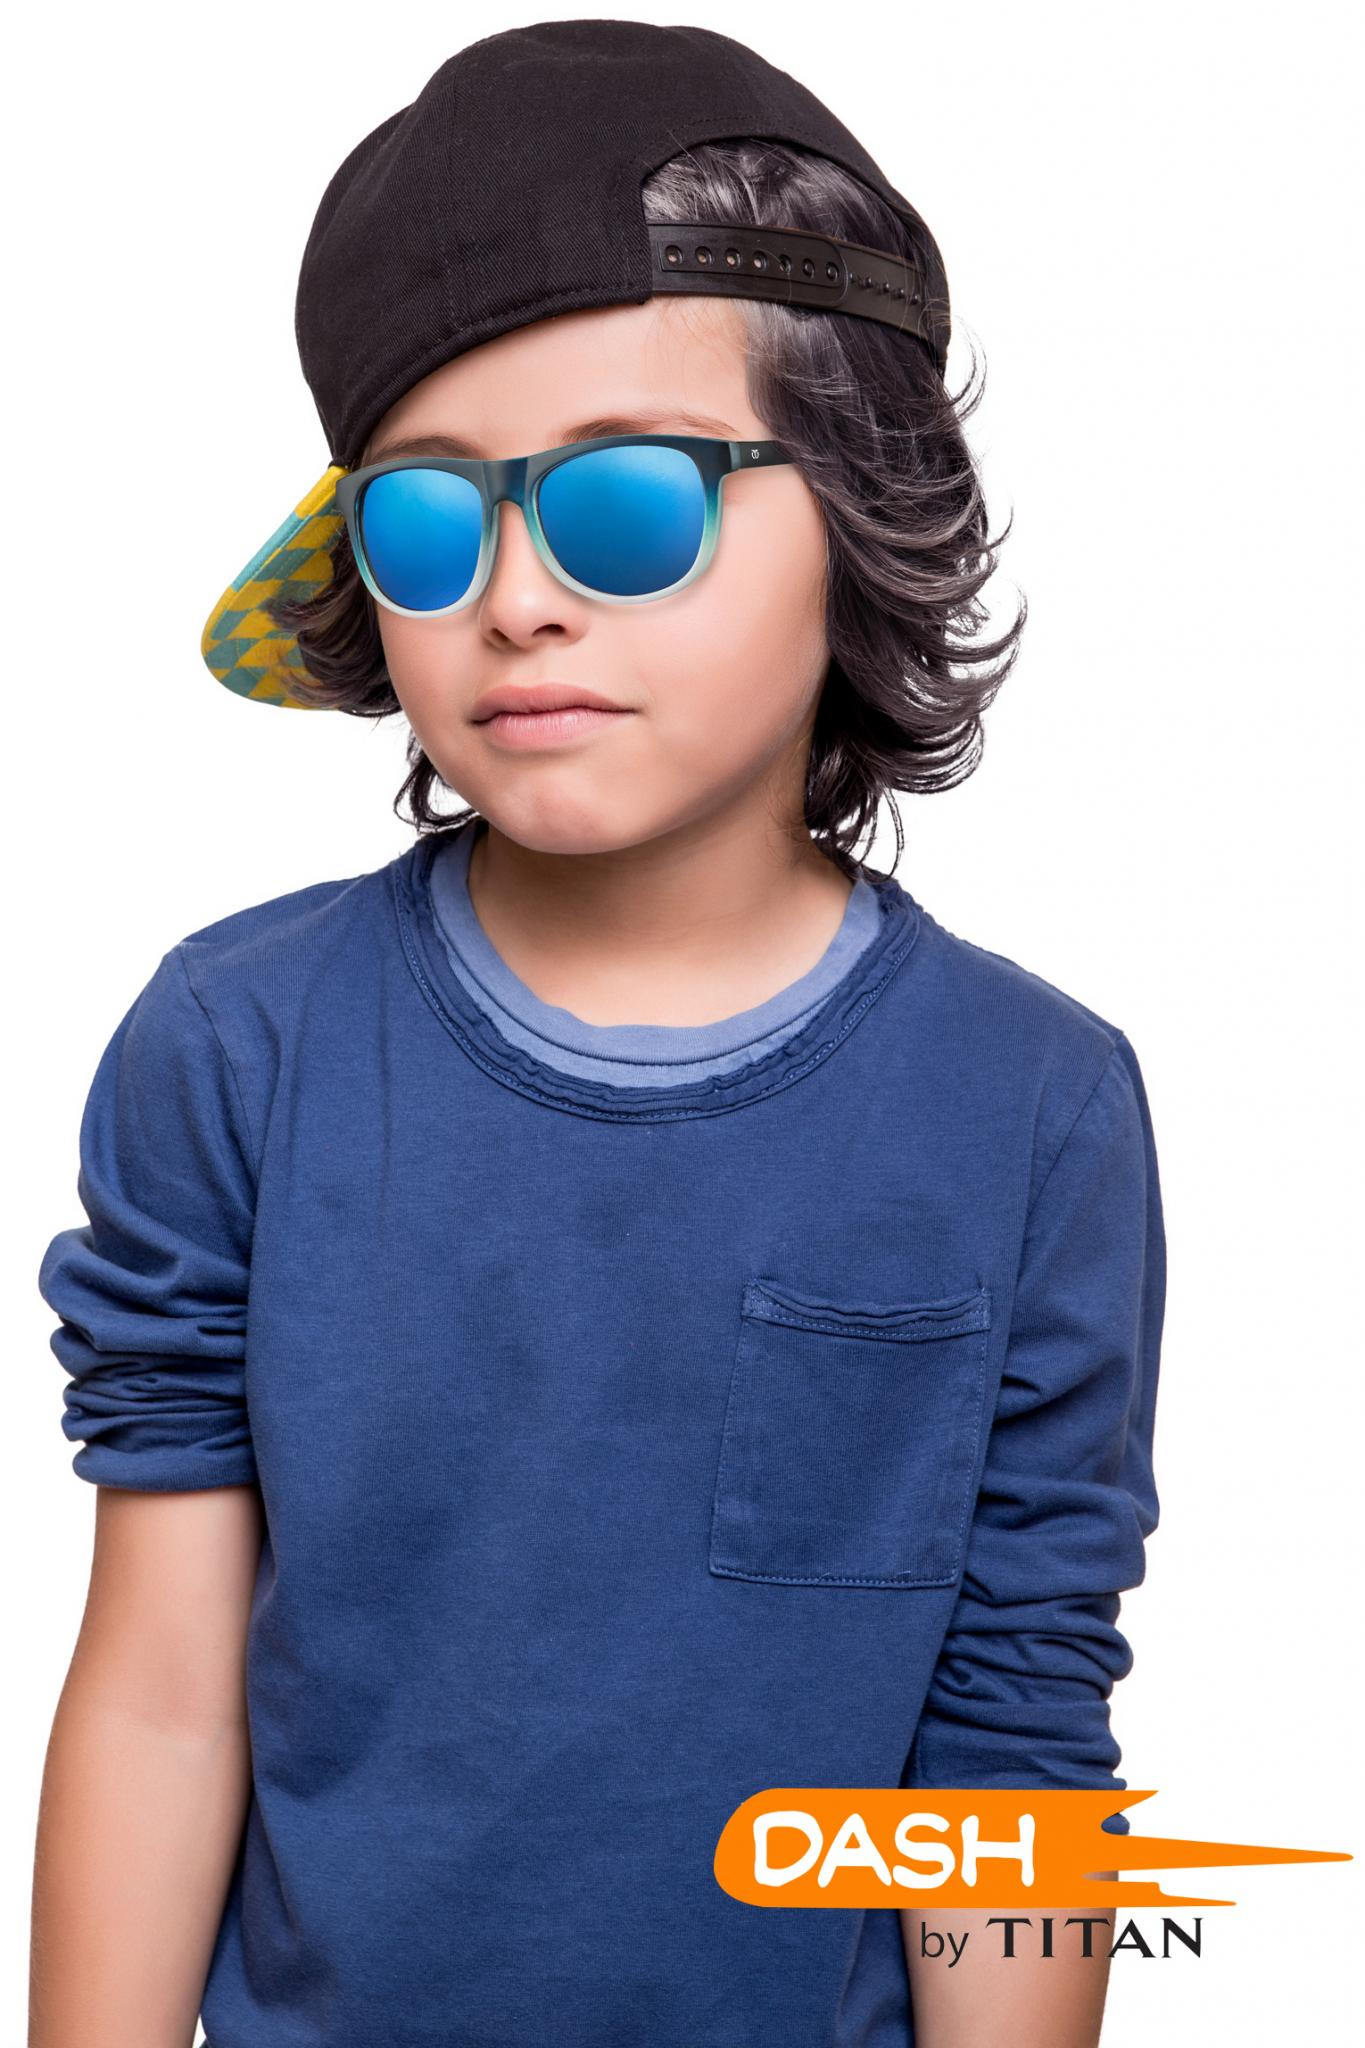 b2c87f9a18d Why Our Kids Need Sunglasses